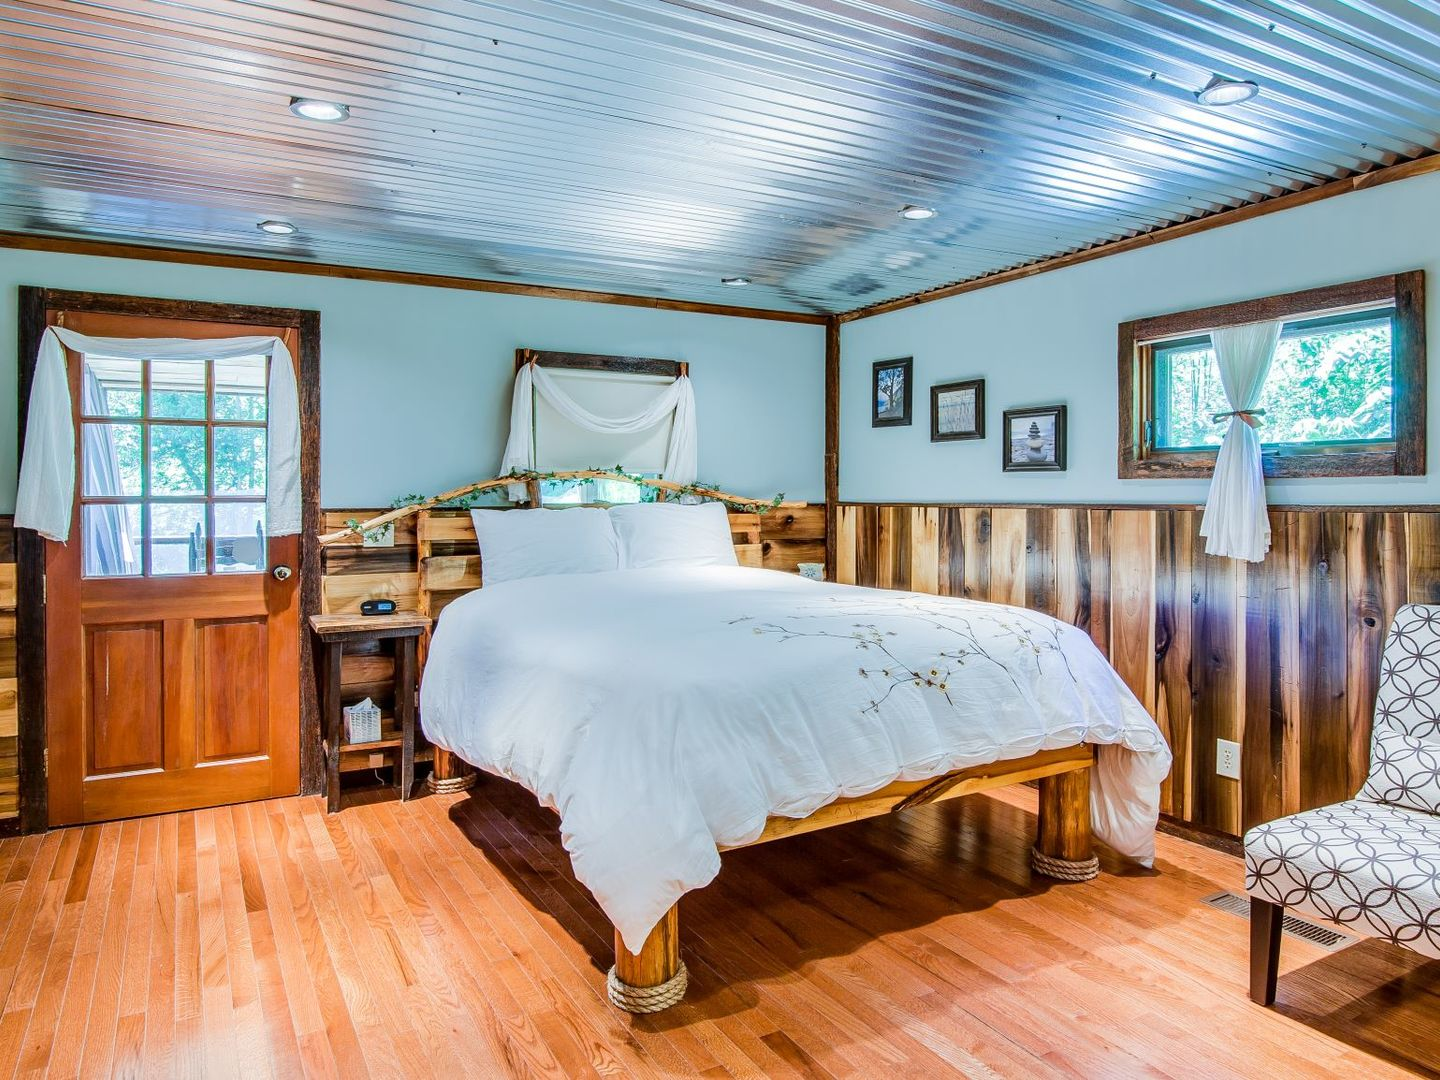 A bedroom with a bed and a chair in a room at Butterfly Hollow Bed and Breakfast.